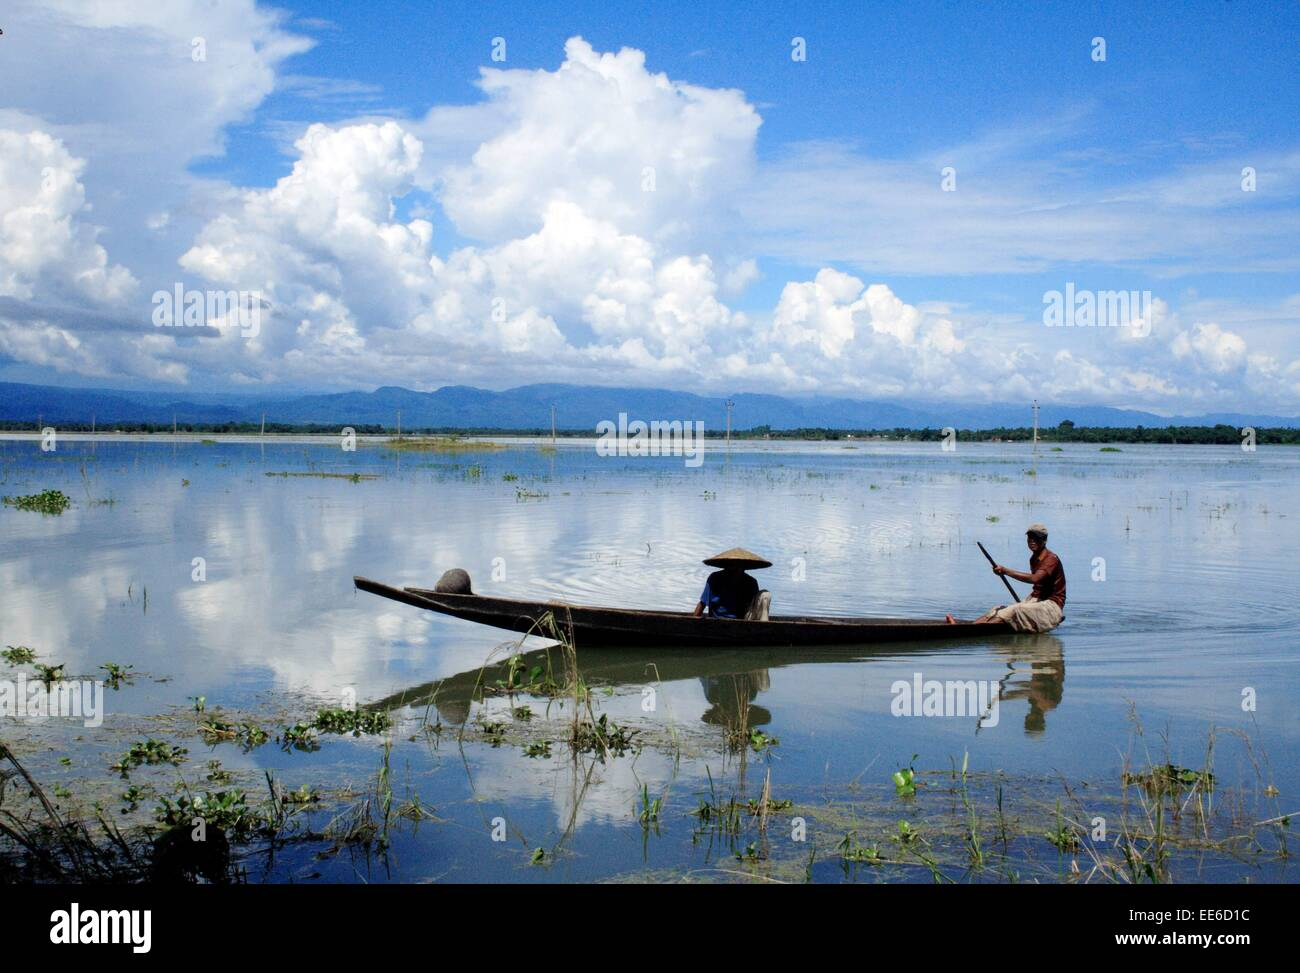 Bangladesh 10 January 2015  Boatman in Tanguar Haor